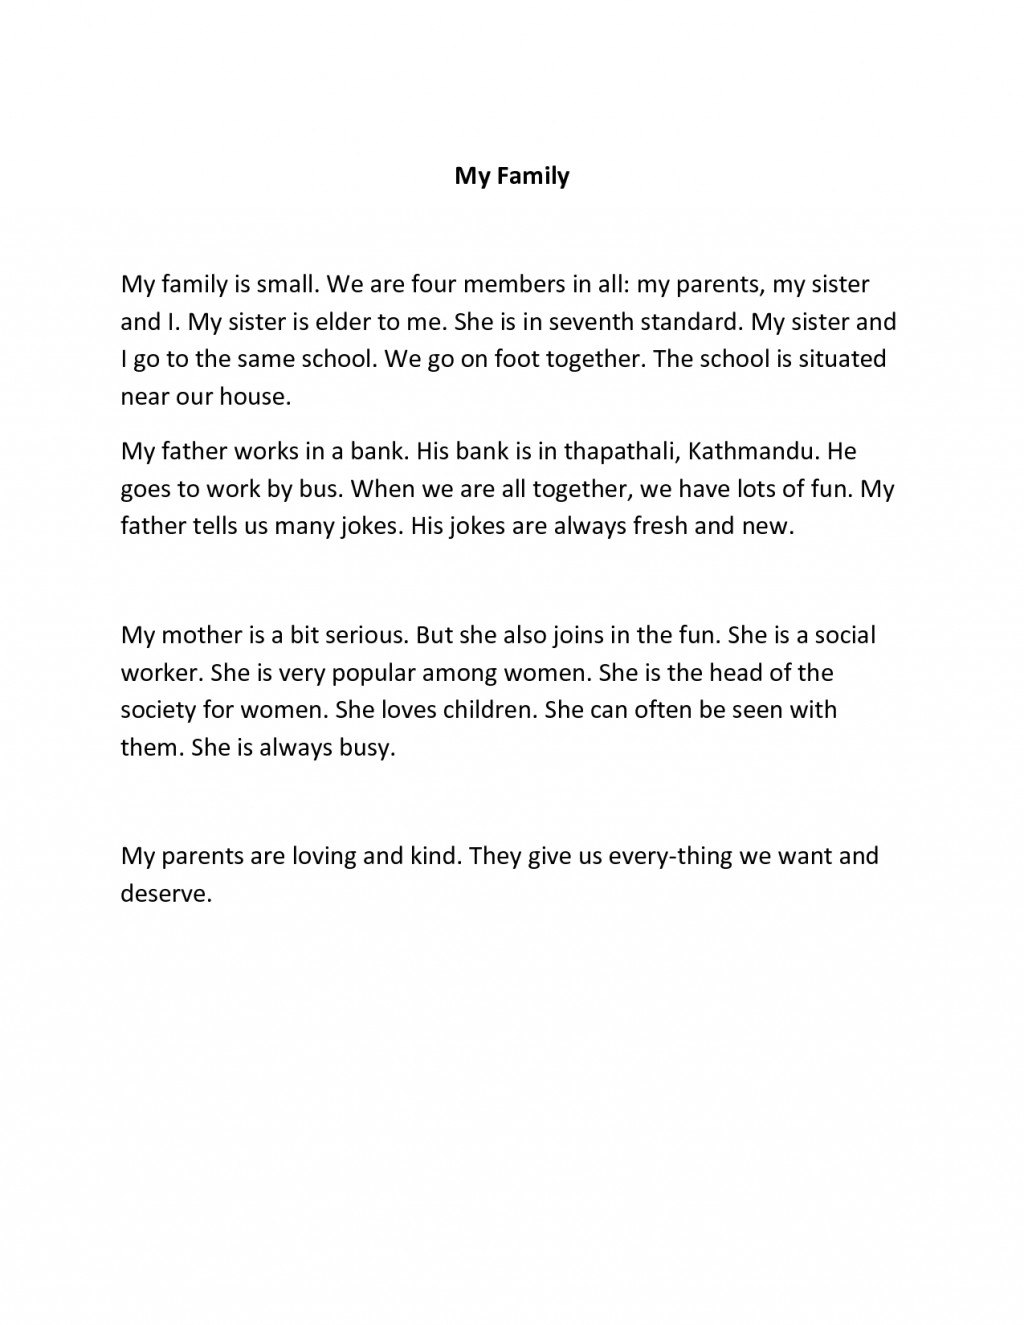 009 Essay About Family Essays Short English My Example For Kindergarten On Class In German I Love Is Always Supportive Hindi French Pet Student Shocking History Influence Values First And Foremost Large